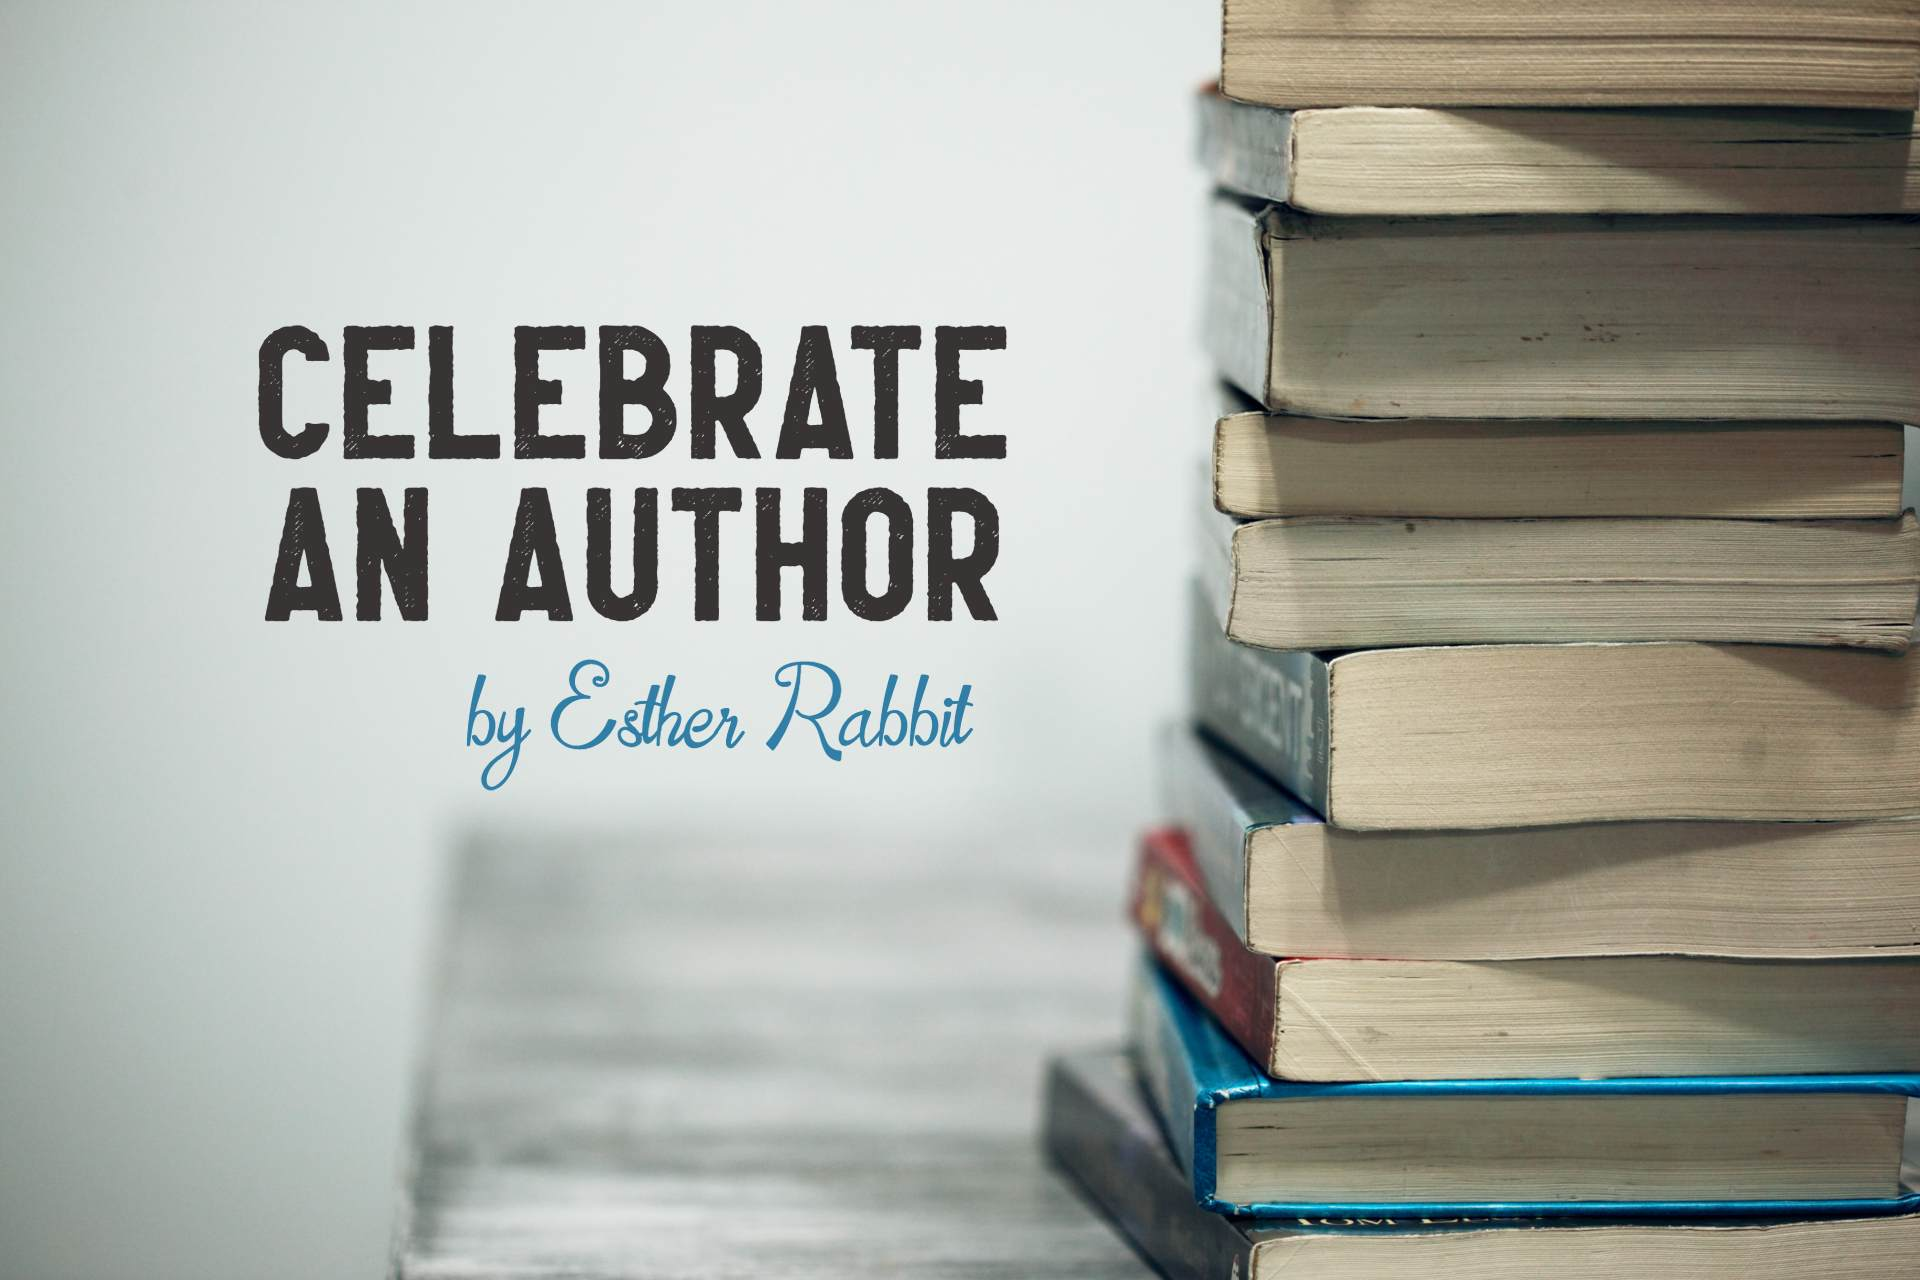 CELEBRATE AN AUTHOR